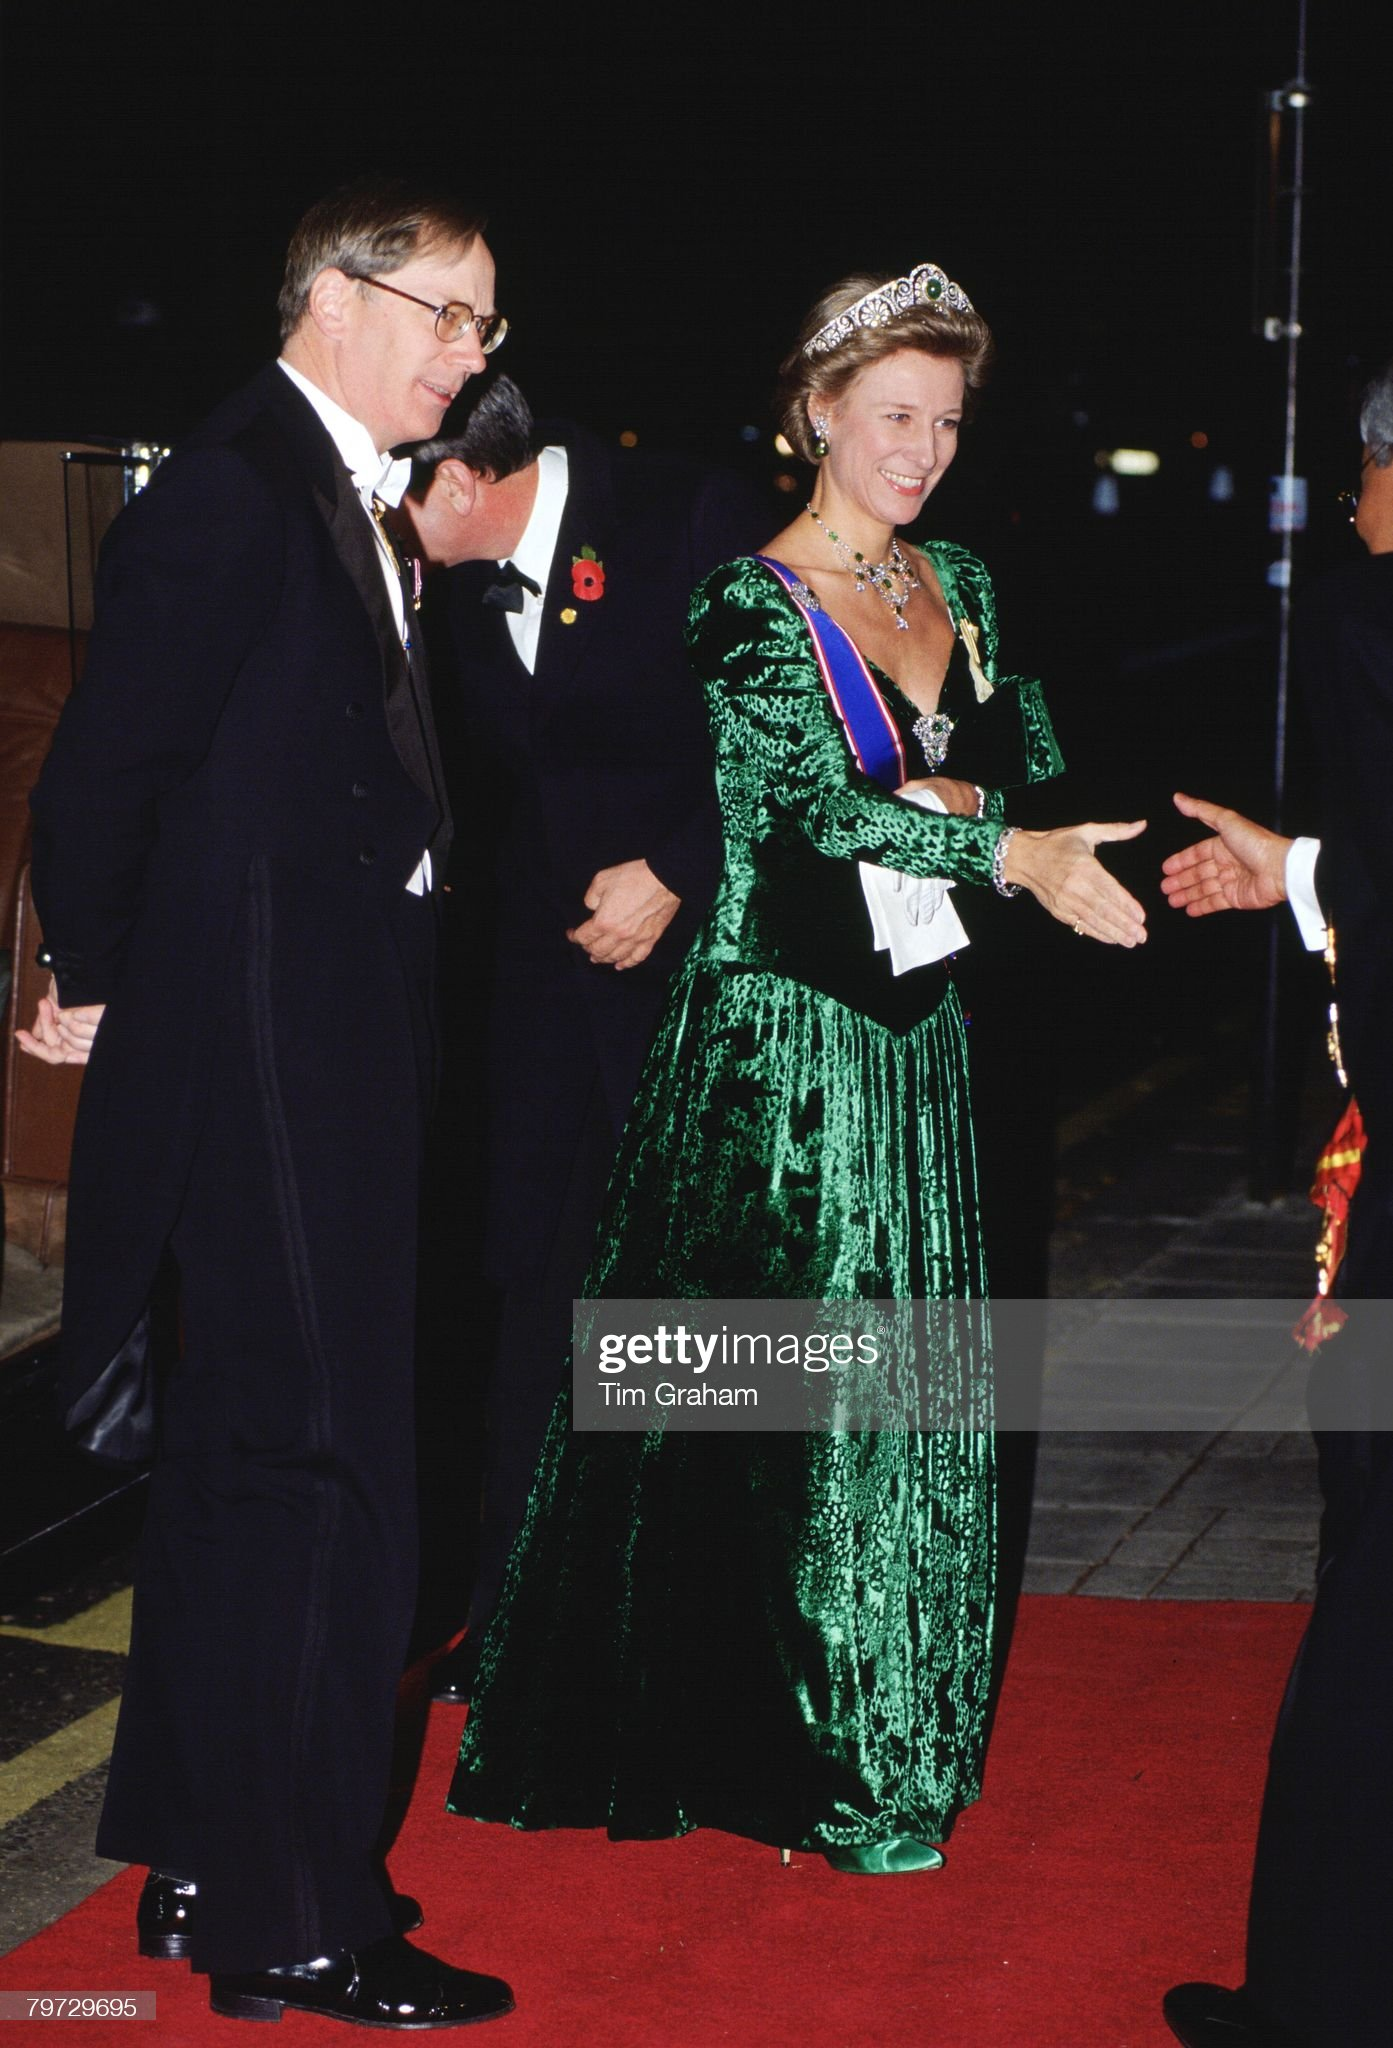 The Duke and Duchess of Gloucester at the Dorchester Hotel f : News Photo